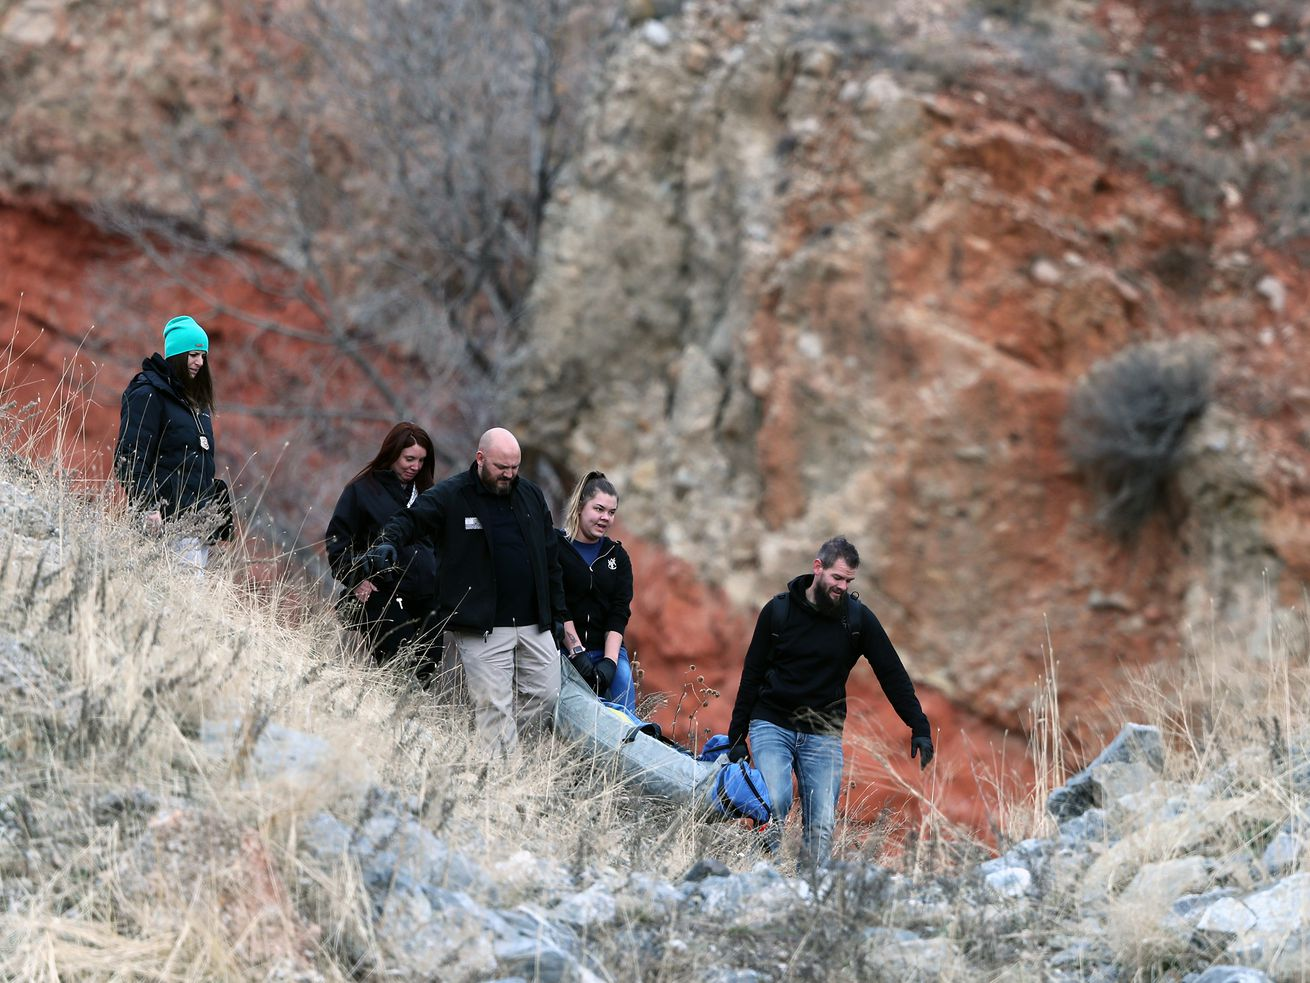 Officers bring the body of a person that was found by a hiker off the mountain near Hell Canyon in Salt Lake City on Sunday, Jan. 5, 2020.